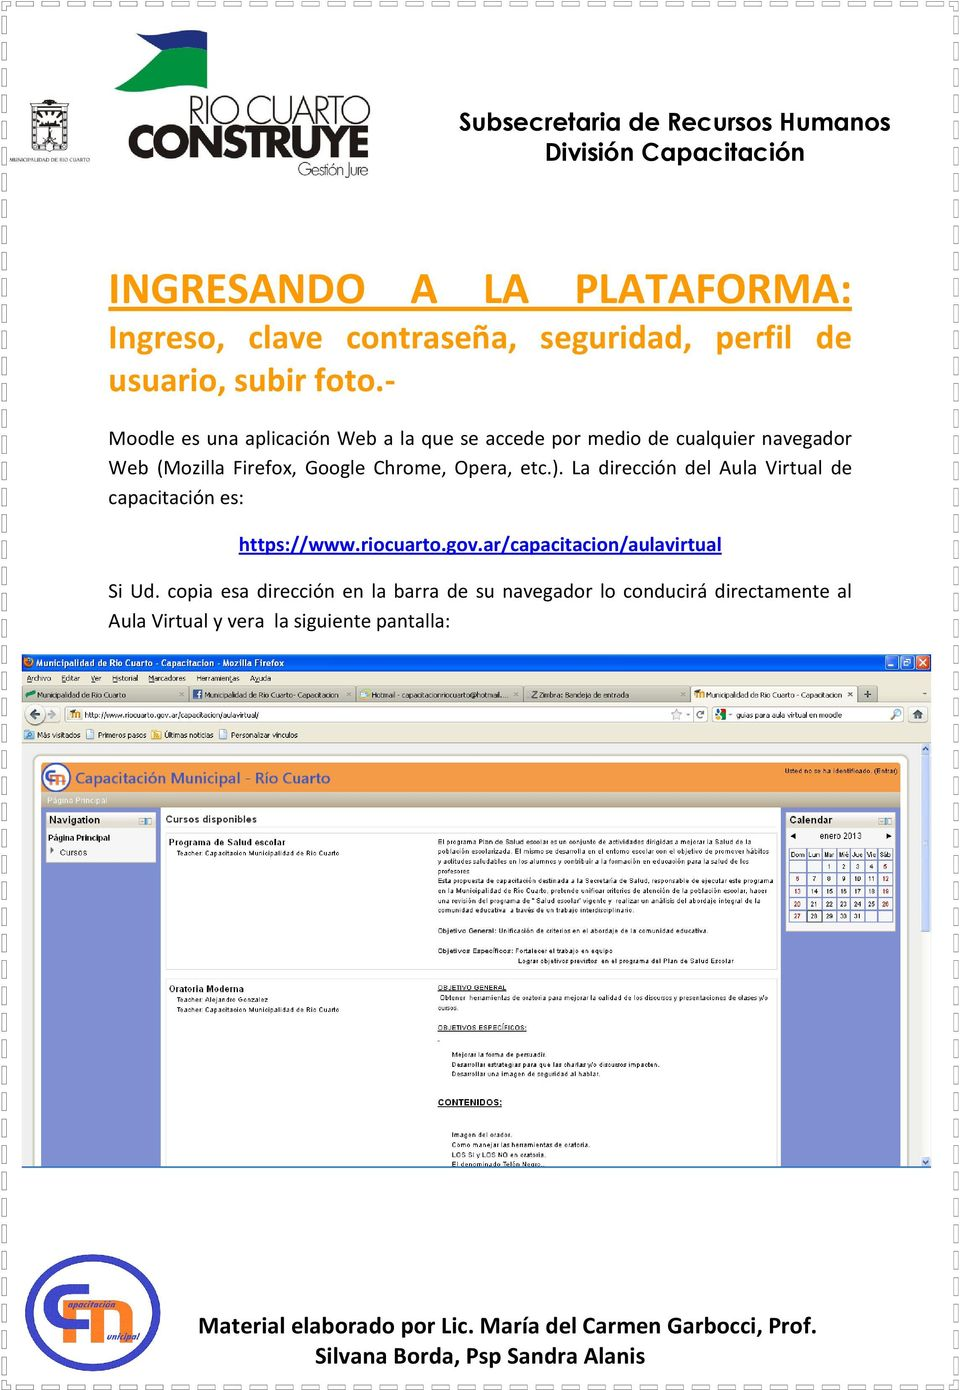 Chrome, Opera, etc.). La dirección del Aula Virtual de capacitación es: https://www.riocuarto.gov.